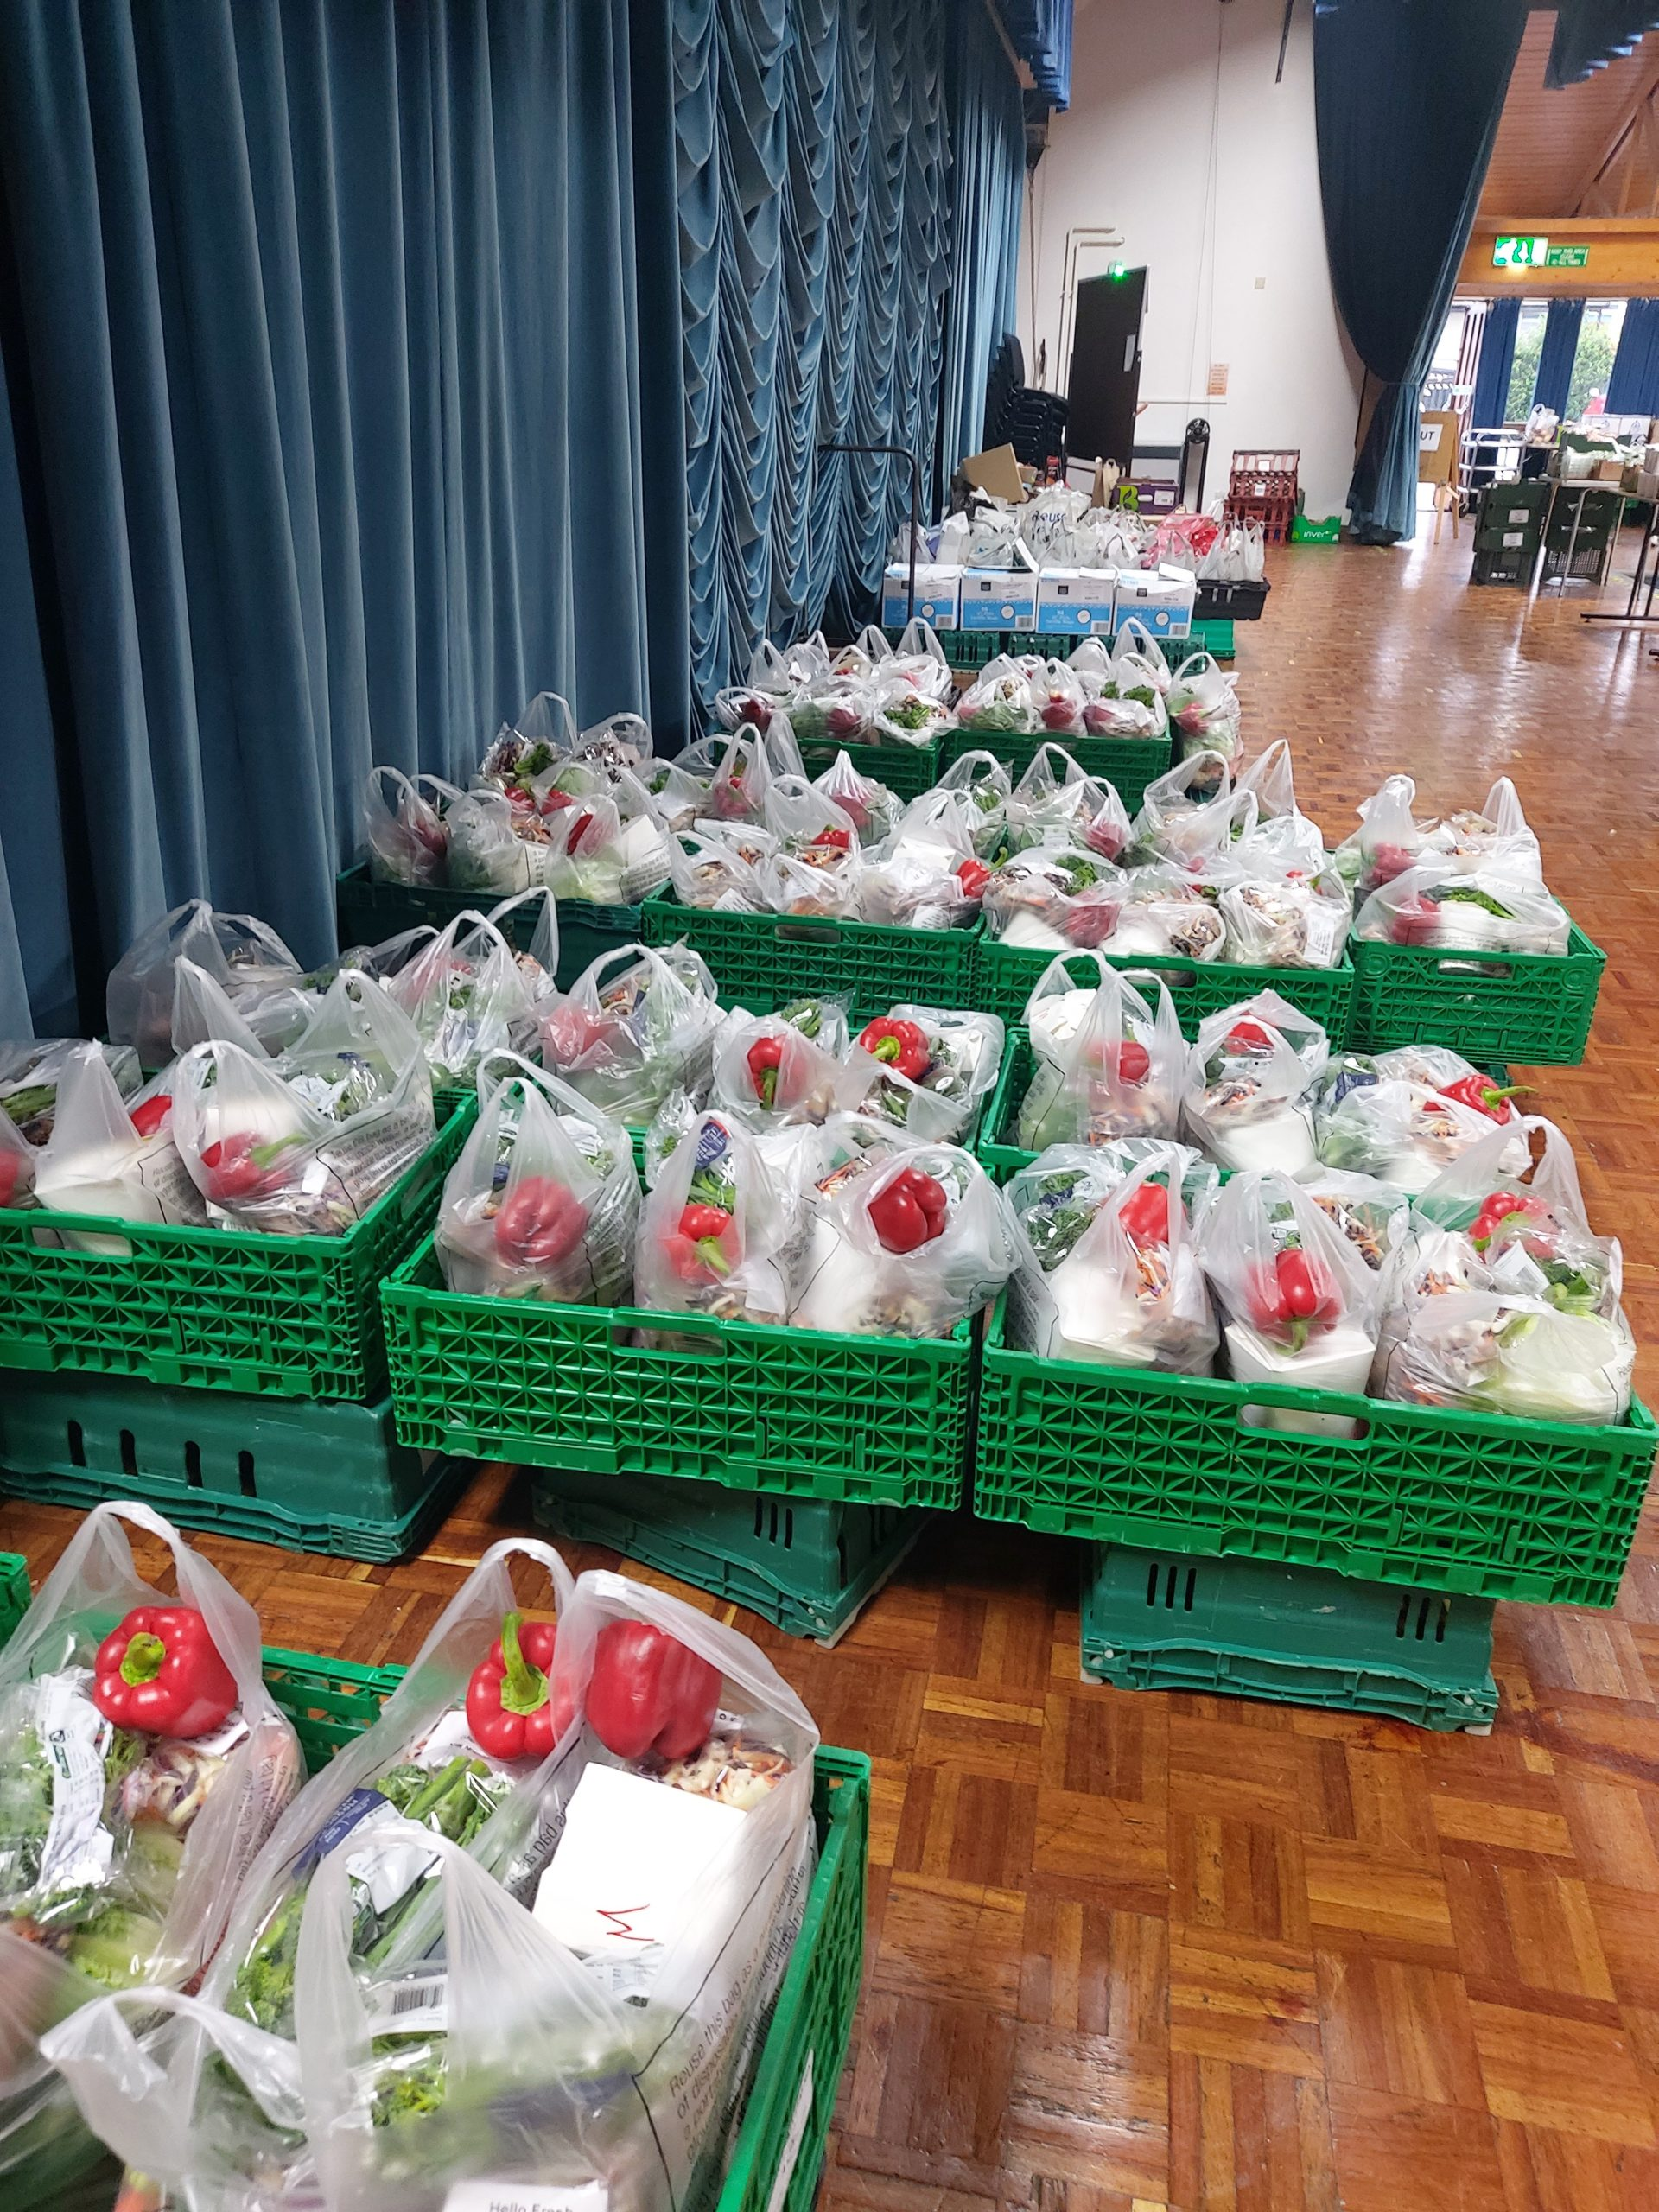 Produce bags are packed and ready to be distributed to hundreds of people each week. PHoto by Claire Howard